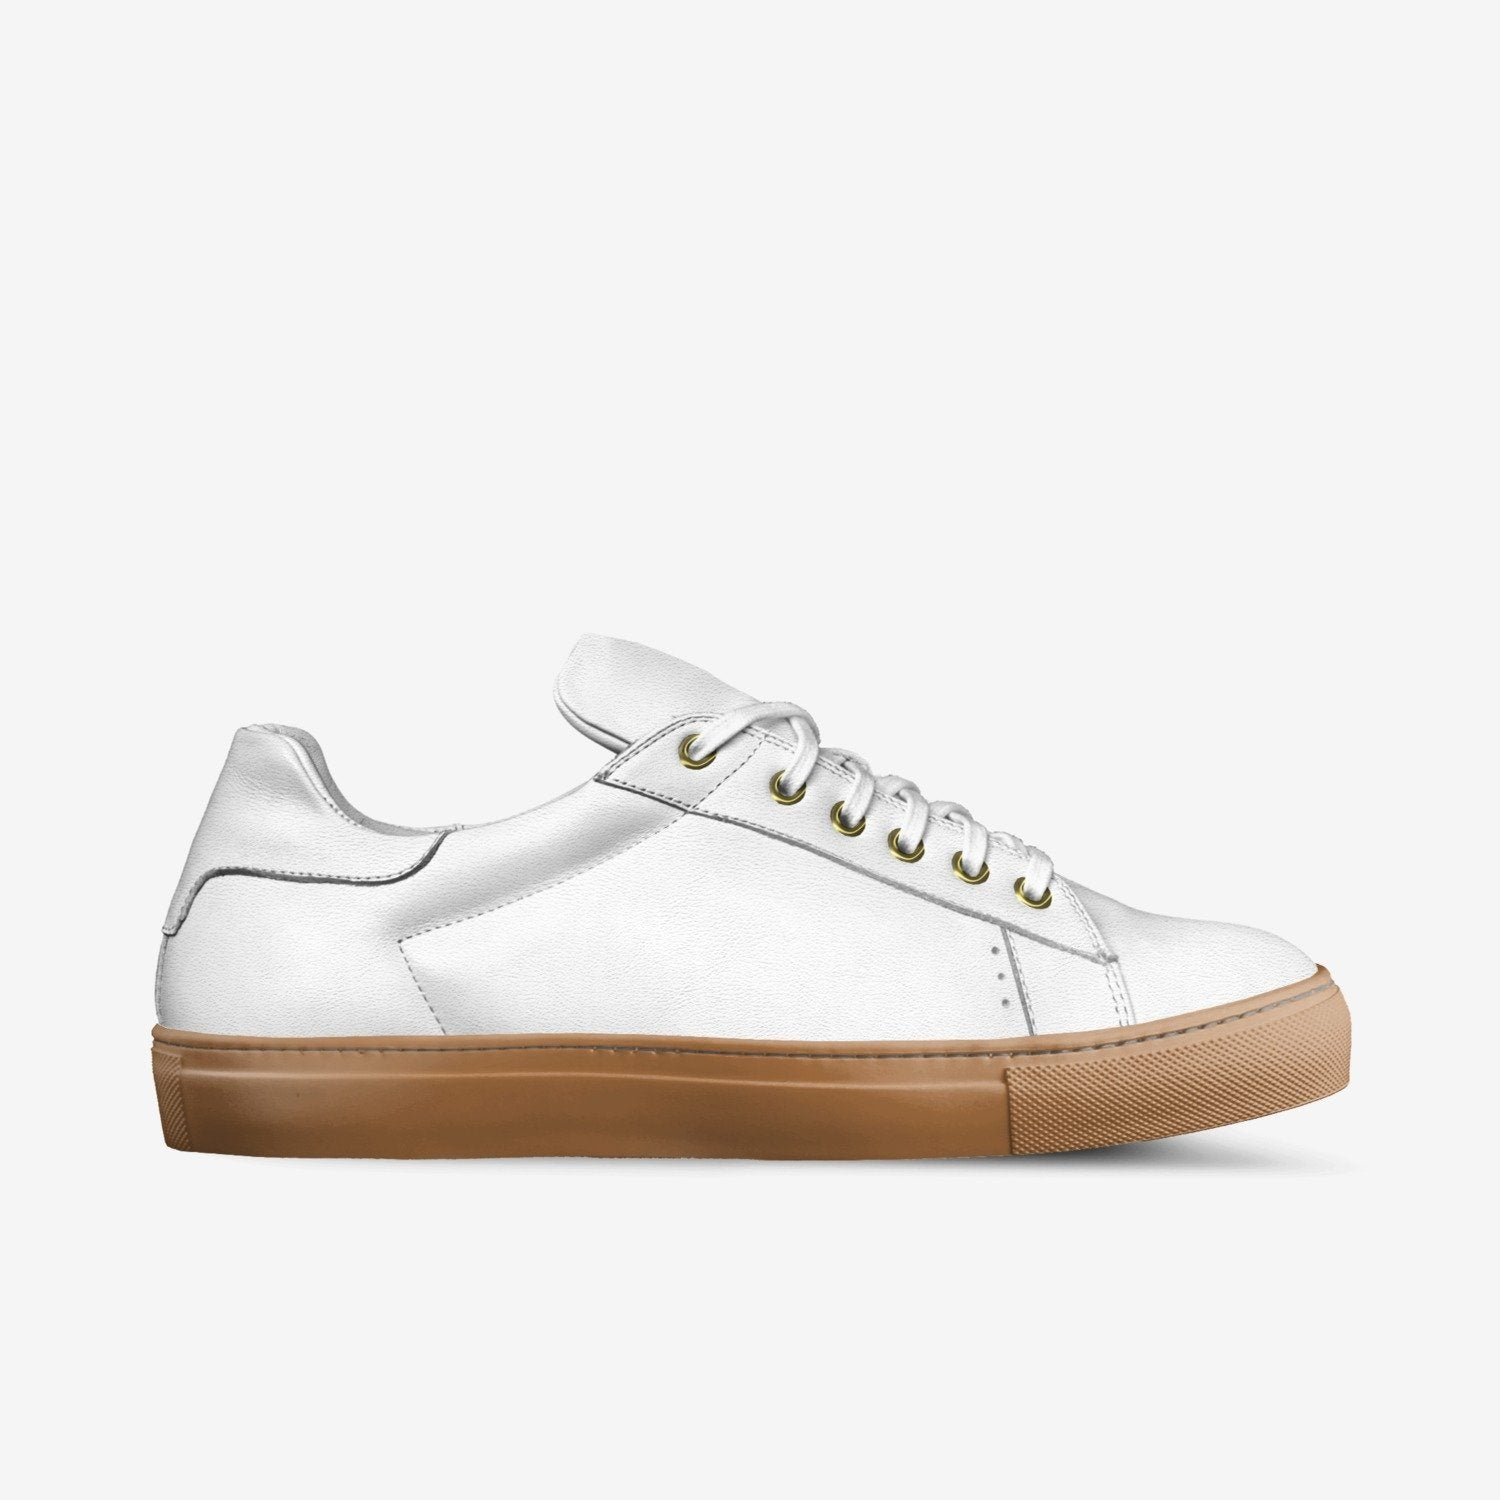 LORENZO LEATHER/GUM SOLE SNEAKERS IN